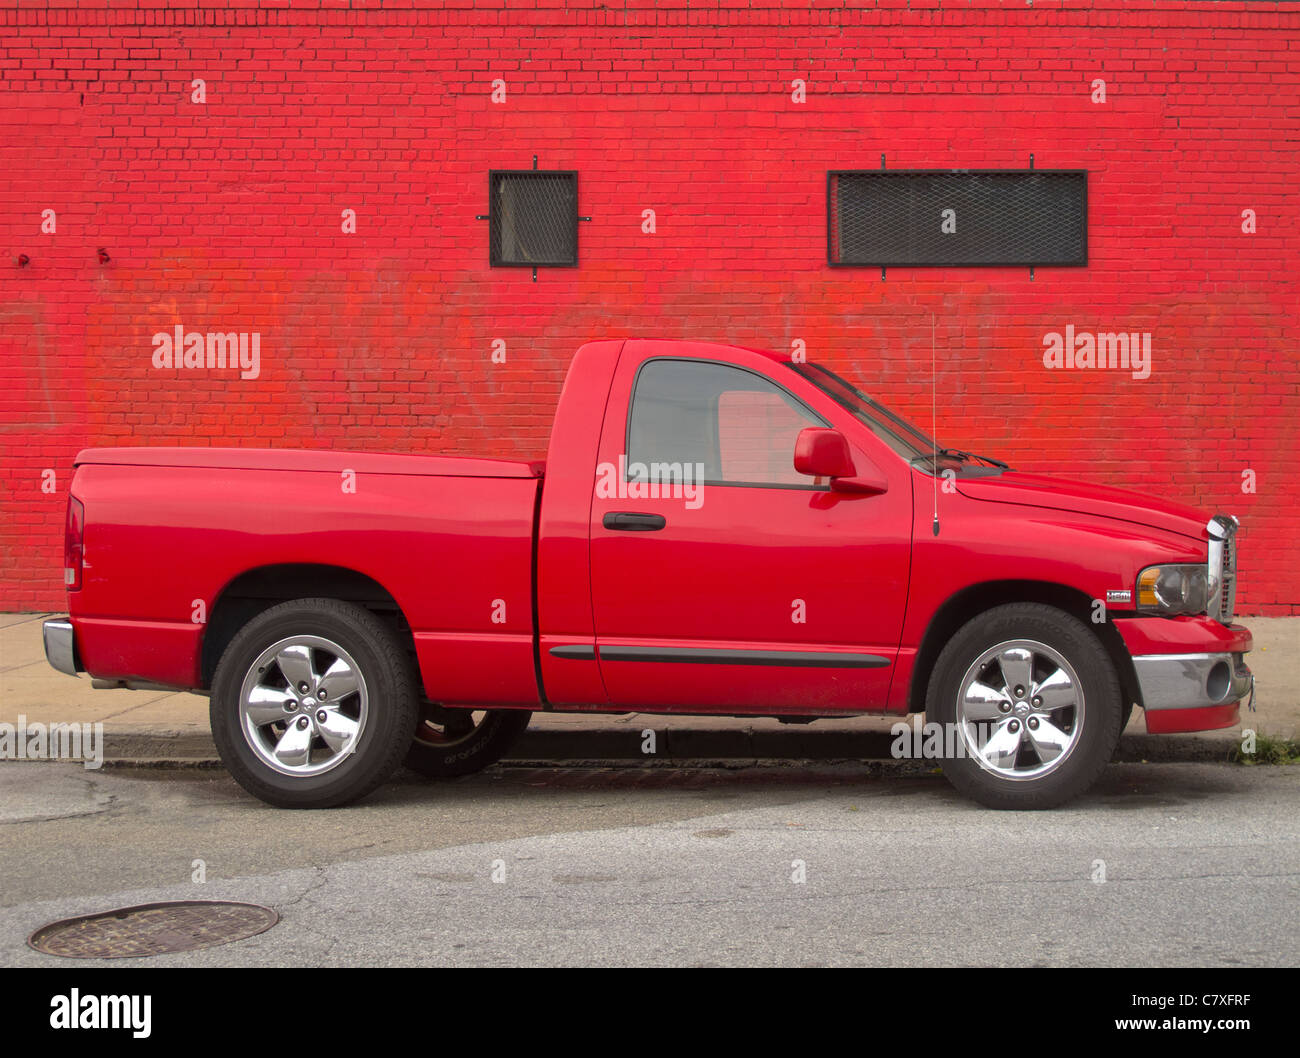 red monochromatic truck and wall - Stock Image